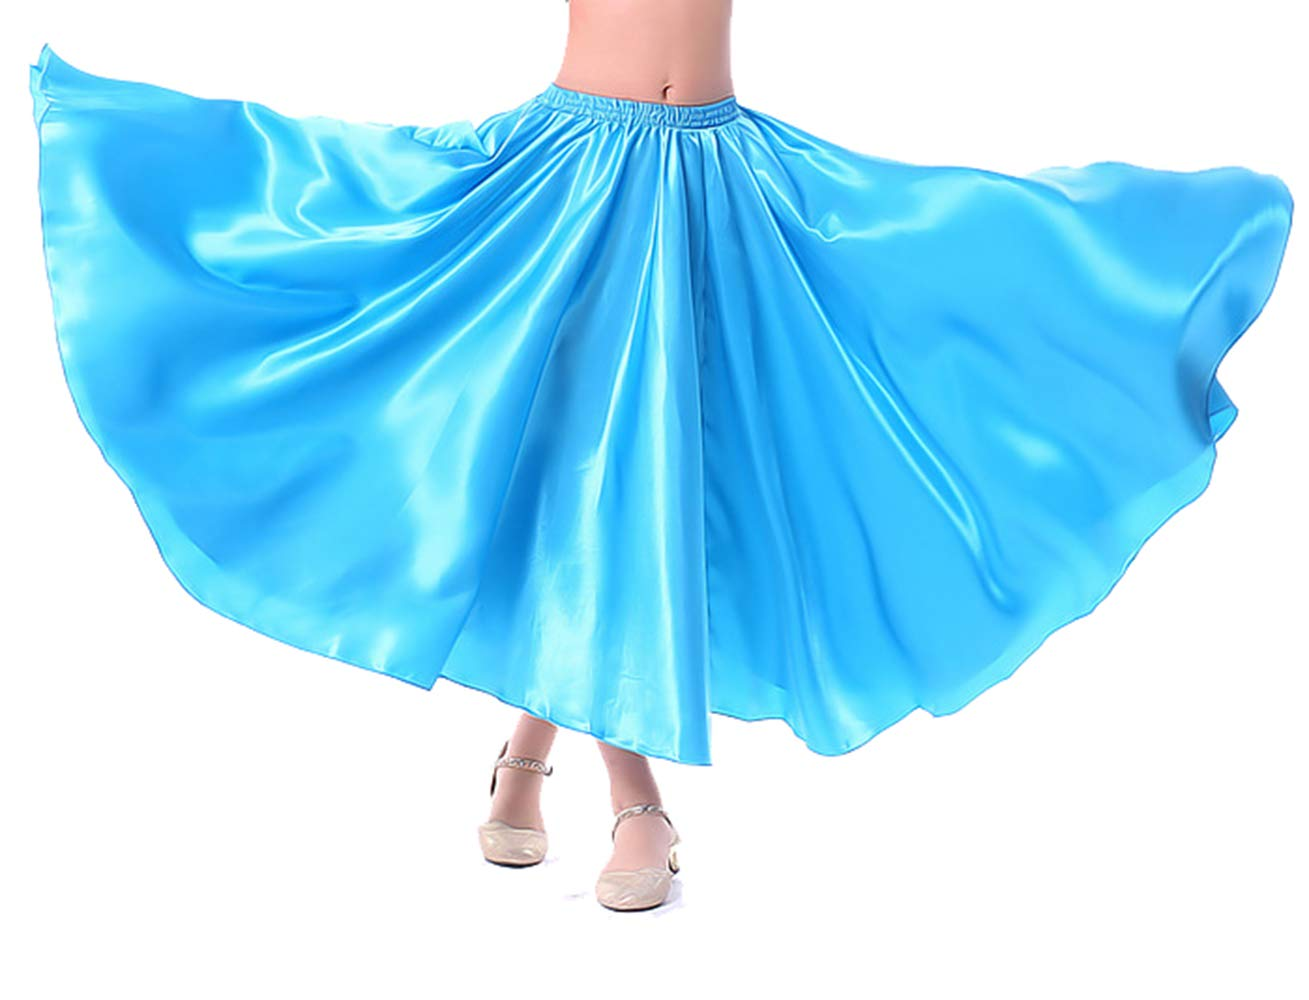 Lauthen.S Kids Gilrs Skirt for Belly Dance/Performance/Halloween Party, Satin Full Circle Tribal Skirt(Blue,L) by Lauthen.S